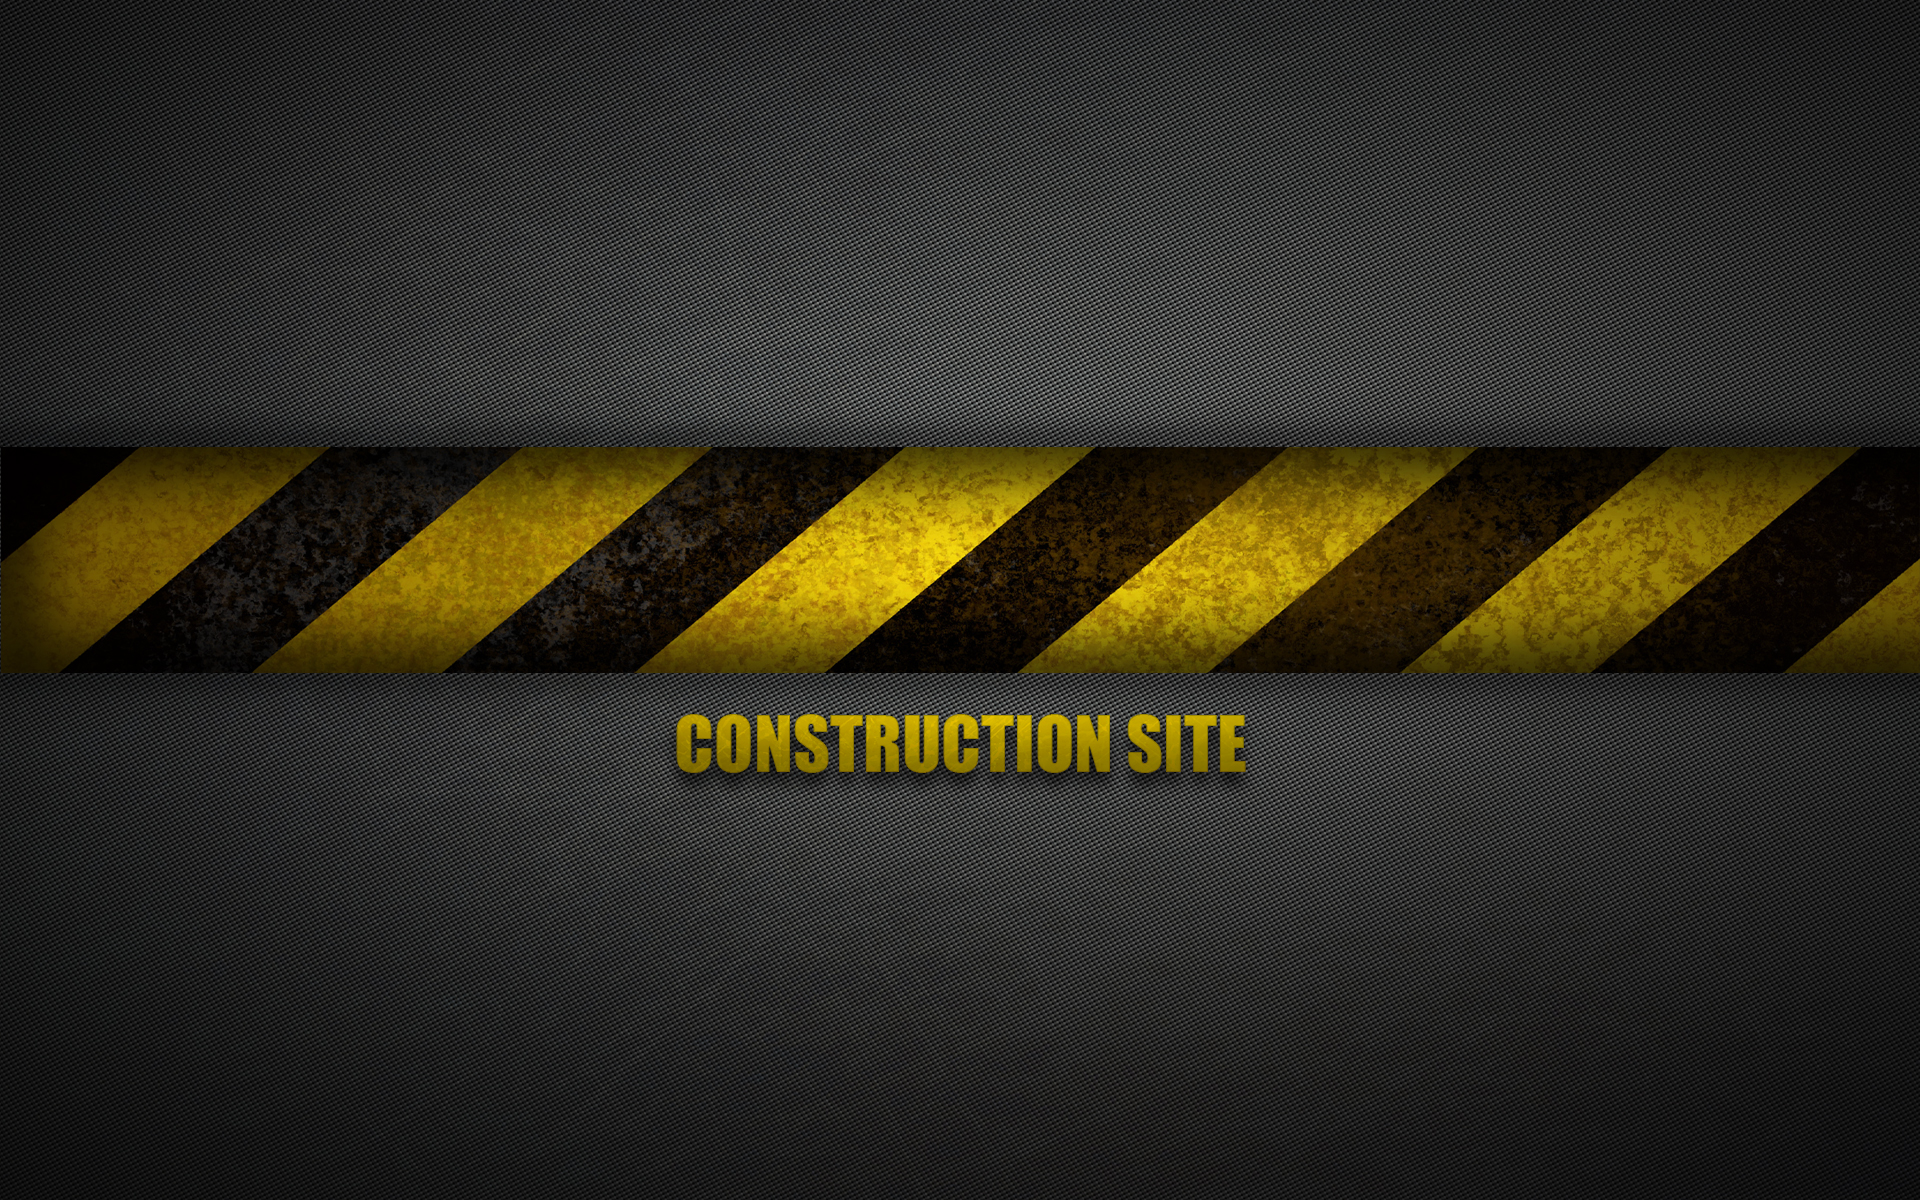 Construction Wallpaper 4